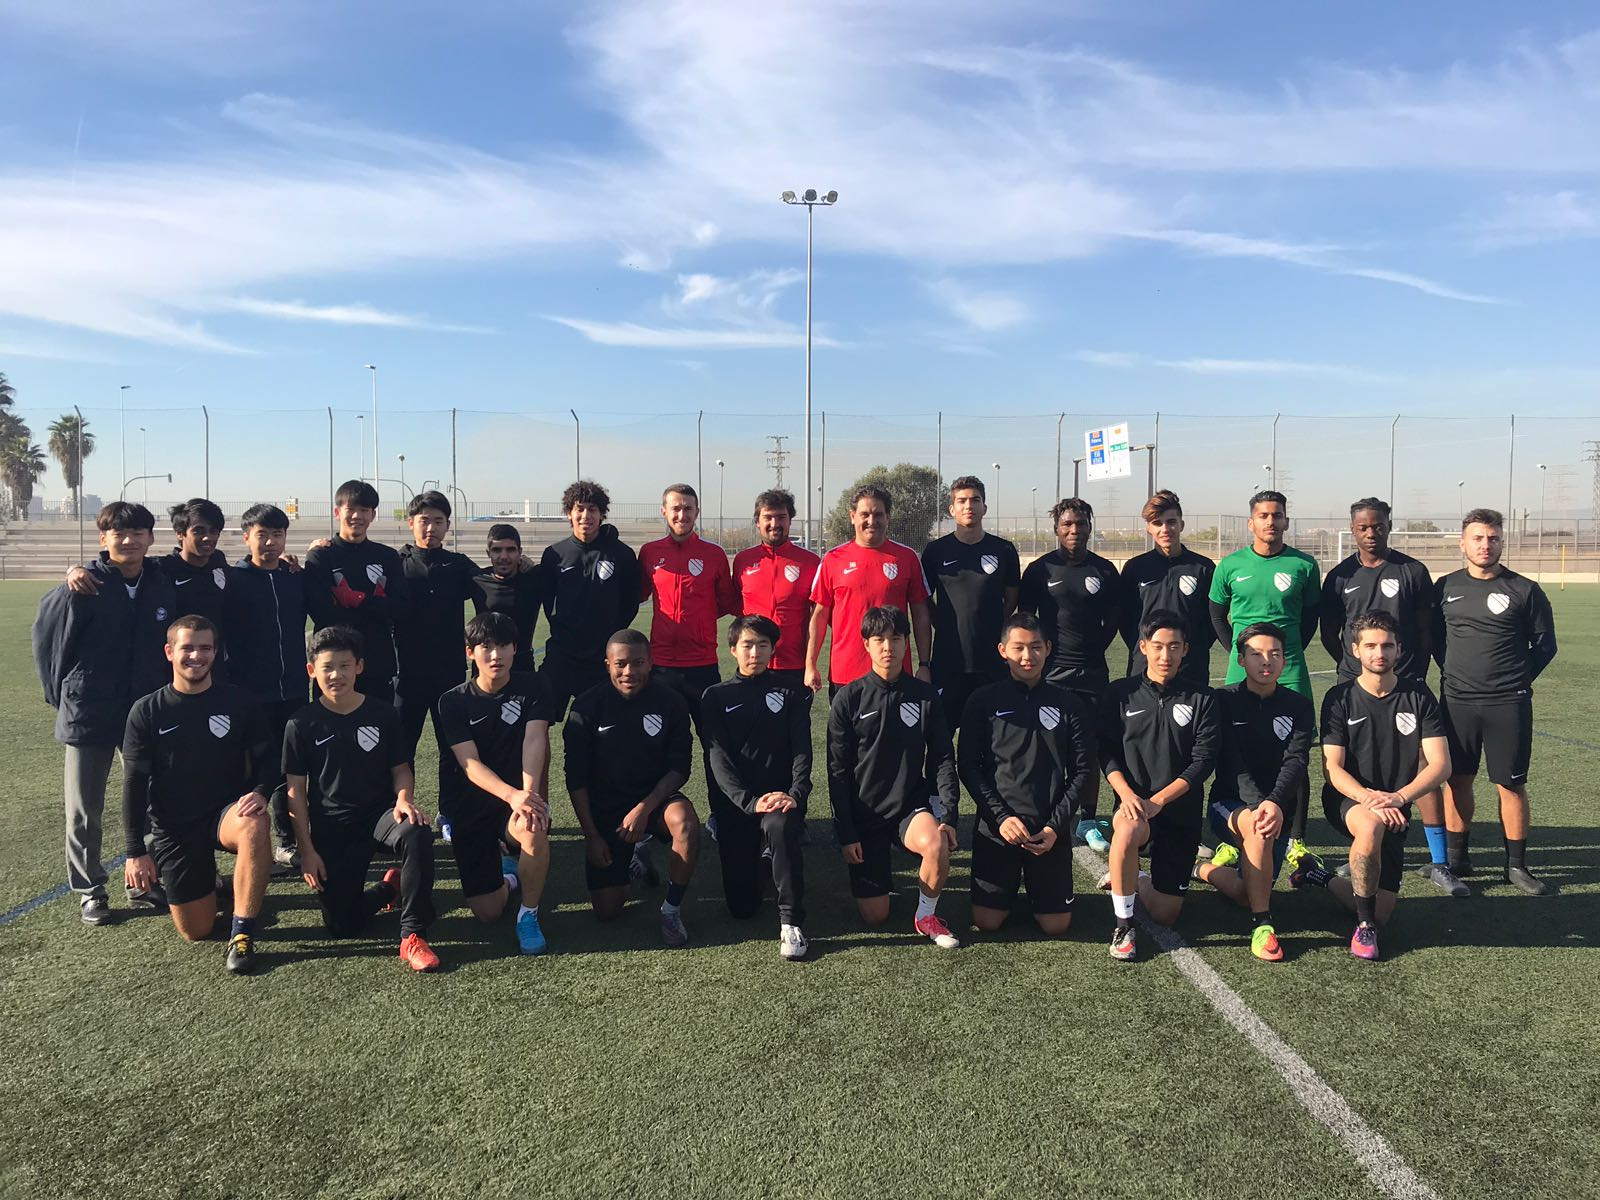 Академия футбола «Spanish pro football Academy» в Испании